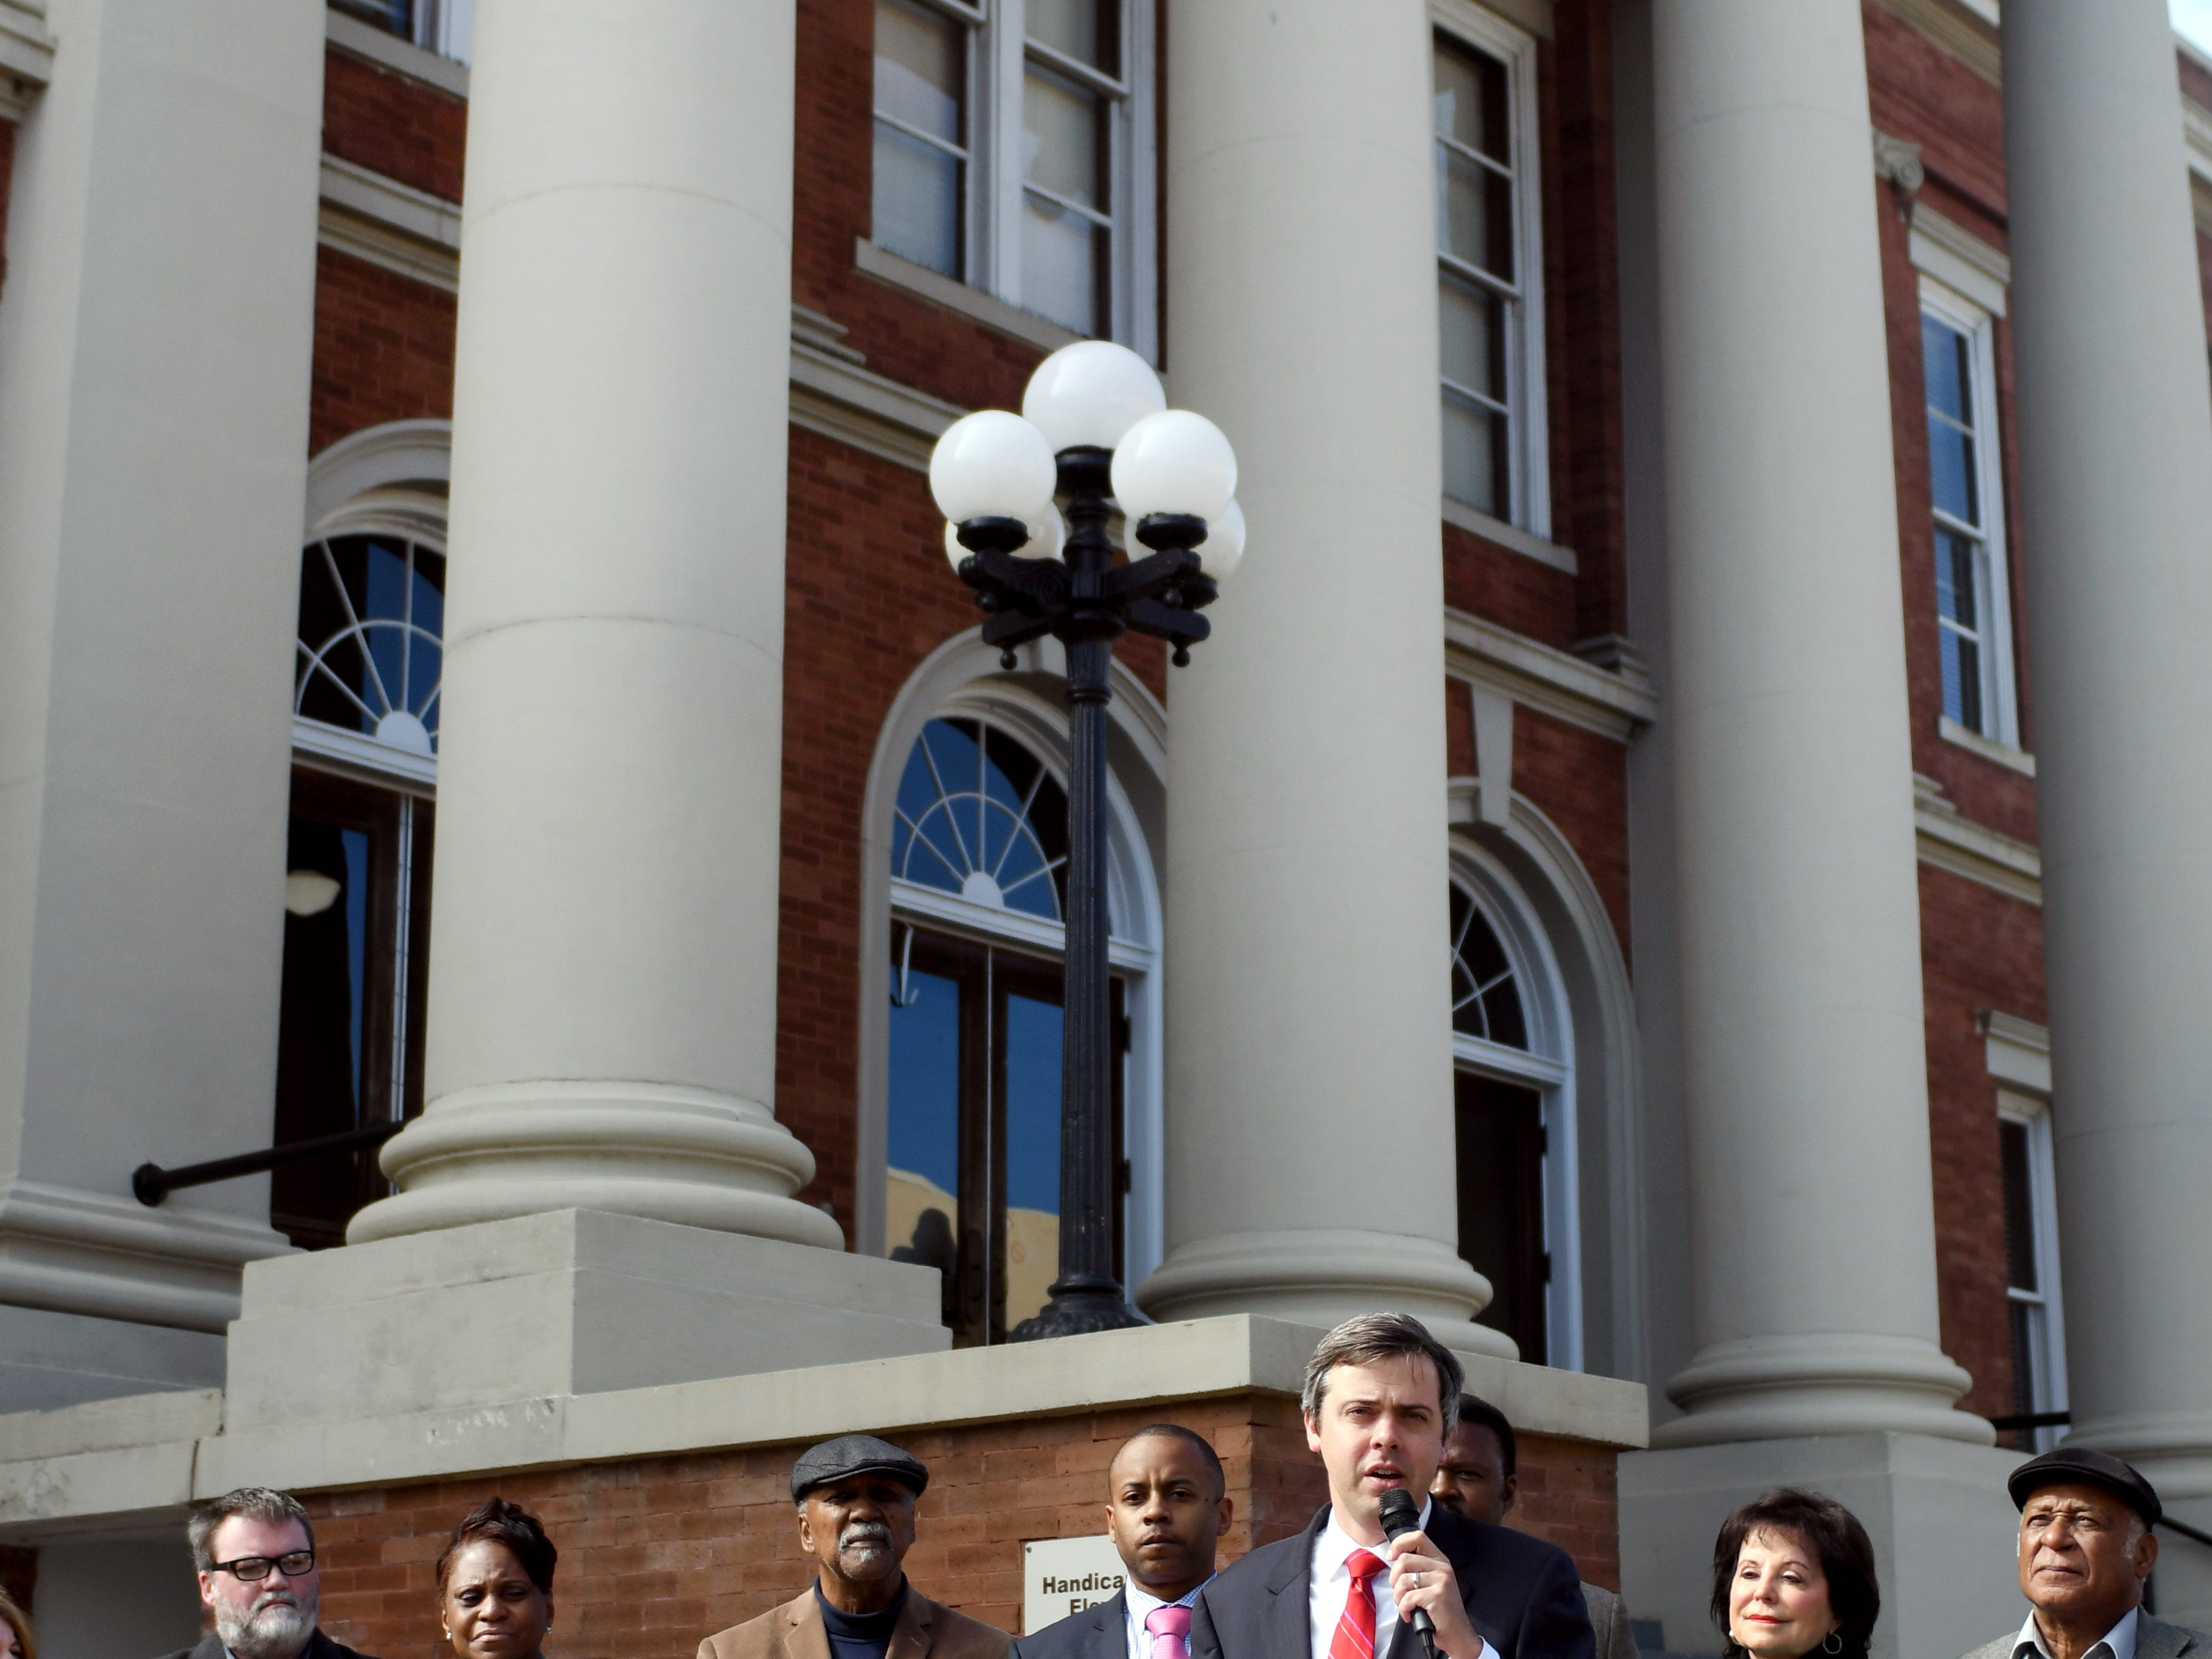 Mayor Toby Barker speaks about the new driving and audio tour of the 1964 Freedom Summer Trail around Hattiesburg. There will be 16 stops in Hattiesburg where guest can visit and listen to the history of the Freedom Summer Trail.